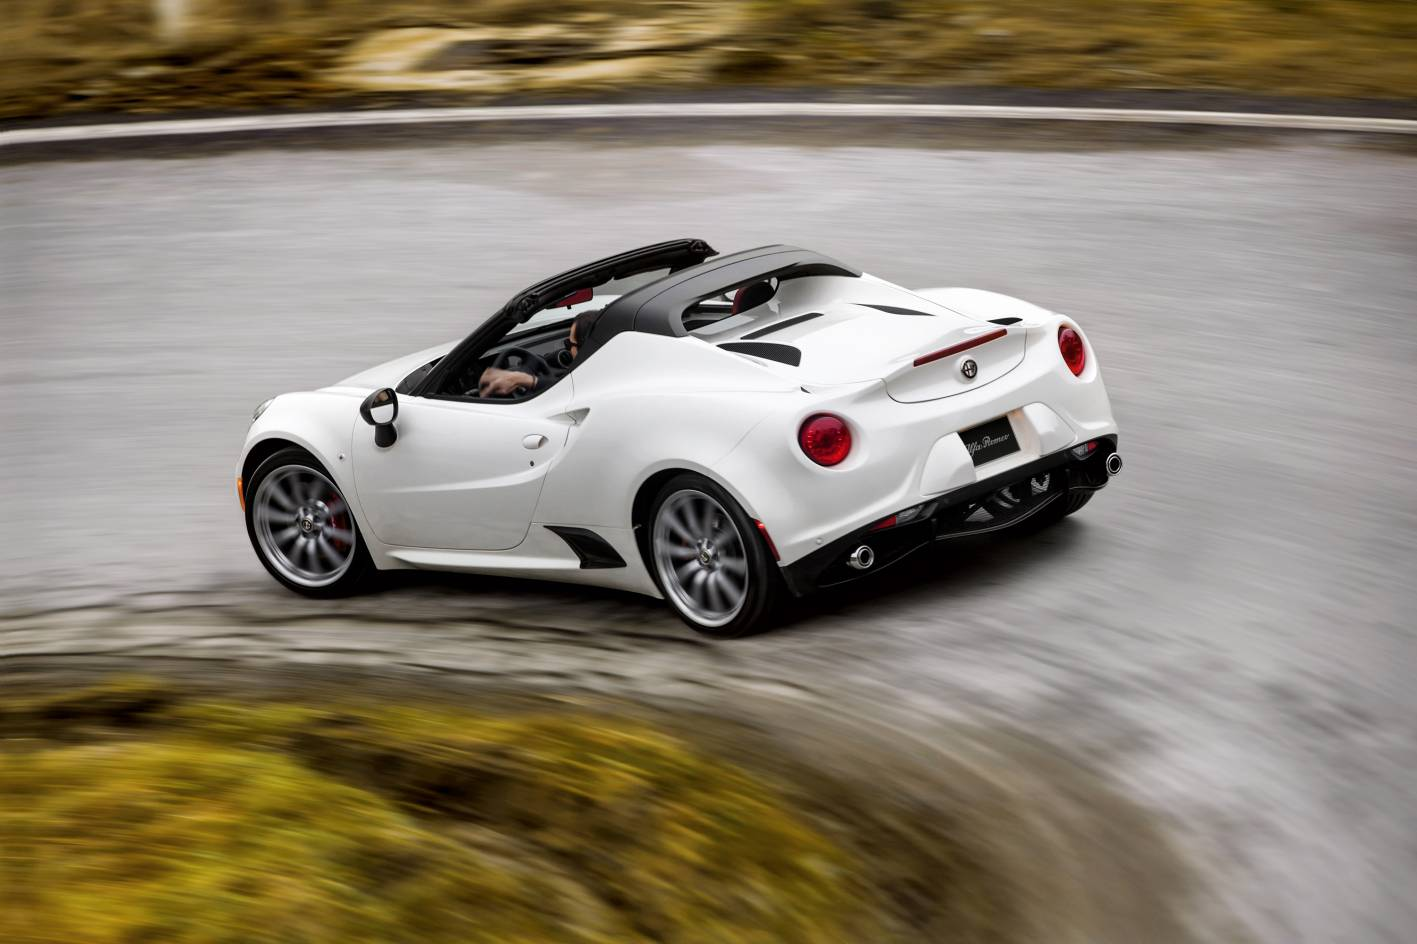 2015 alfa romeo 4c spider here in november sub 100k plus on roads practical motoring. Black Bedroom Furniture Sets. Home Design Ideas